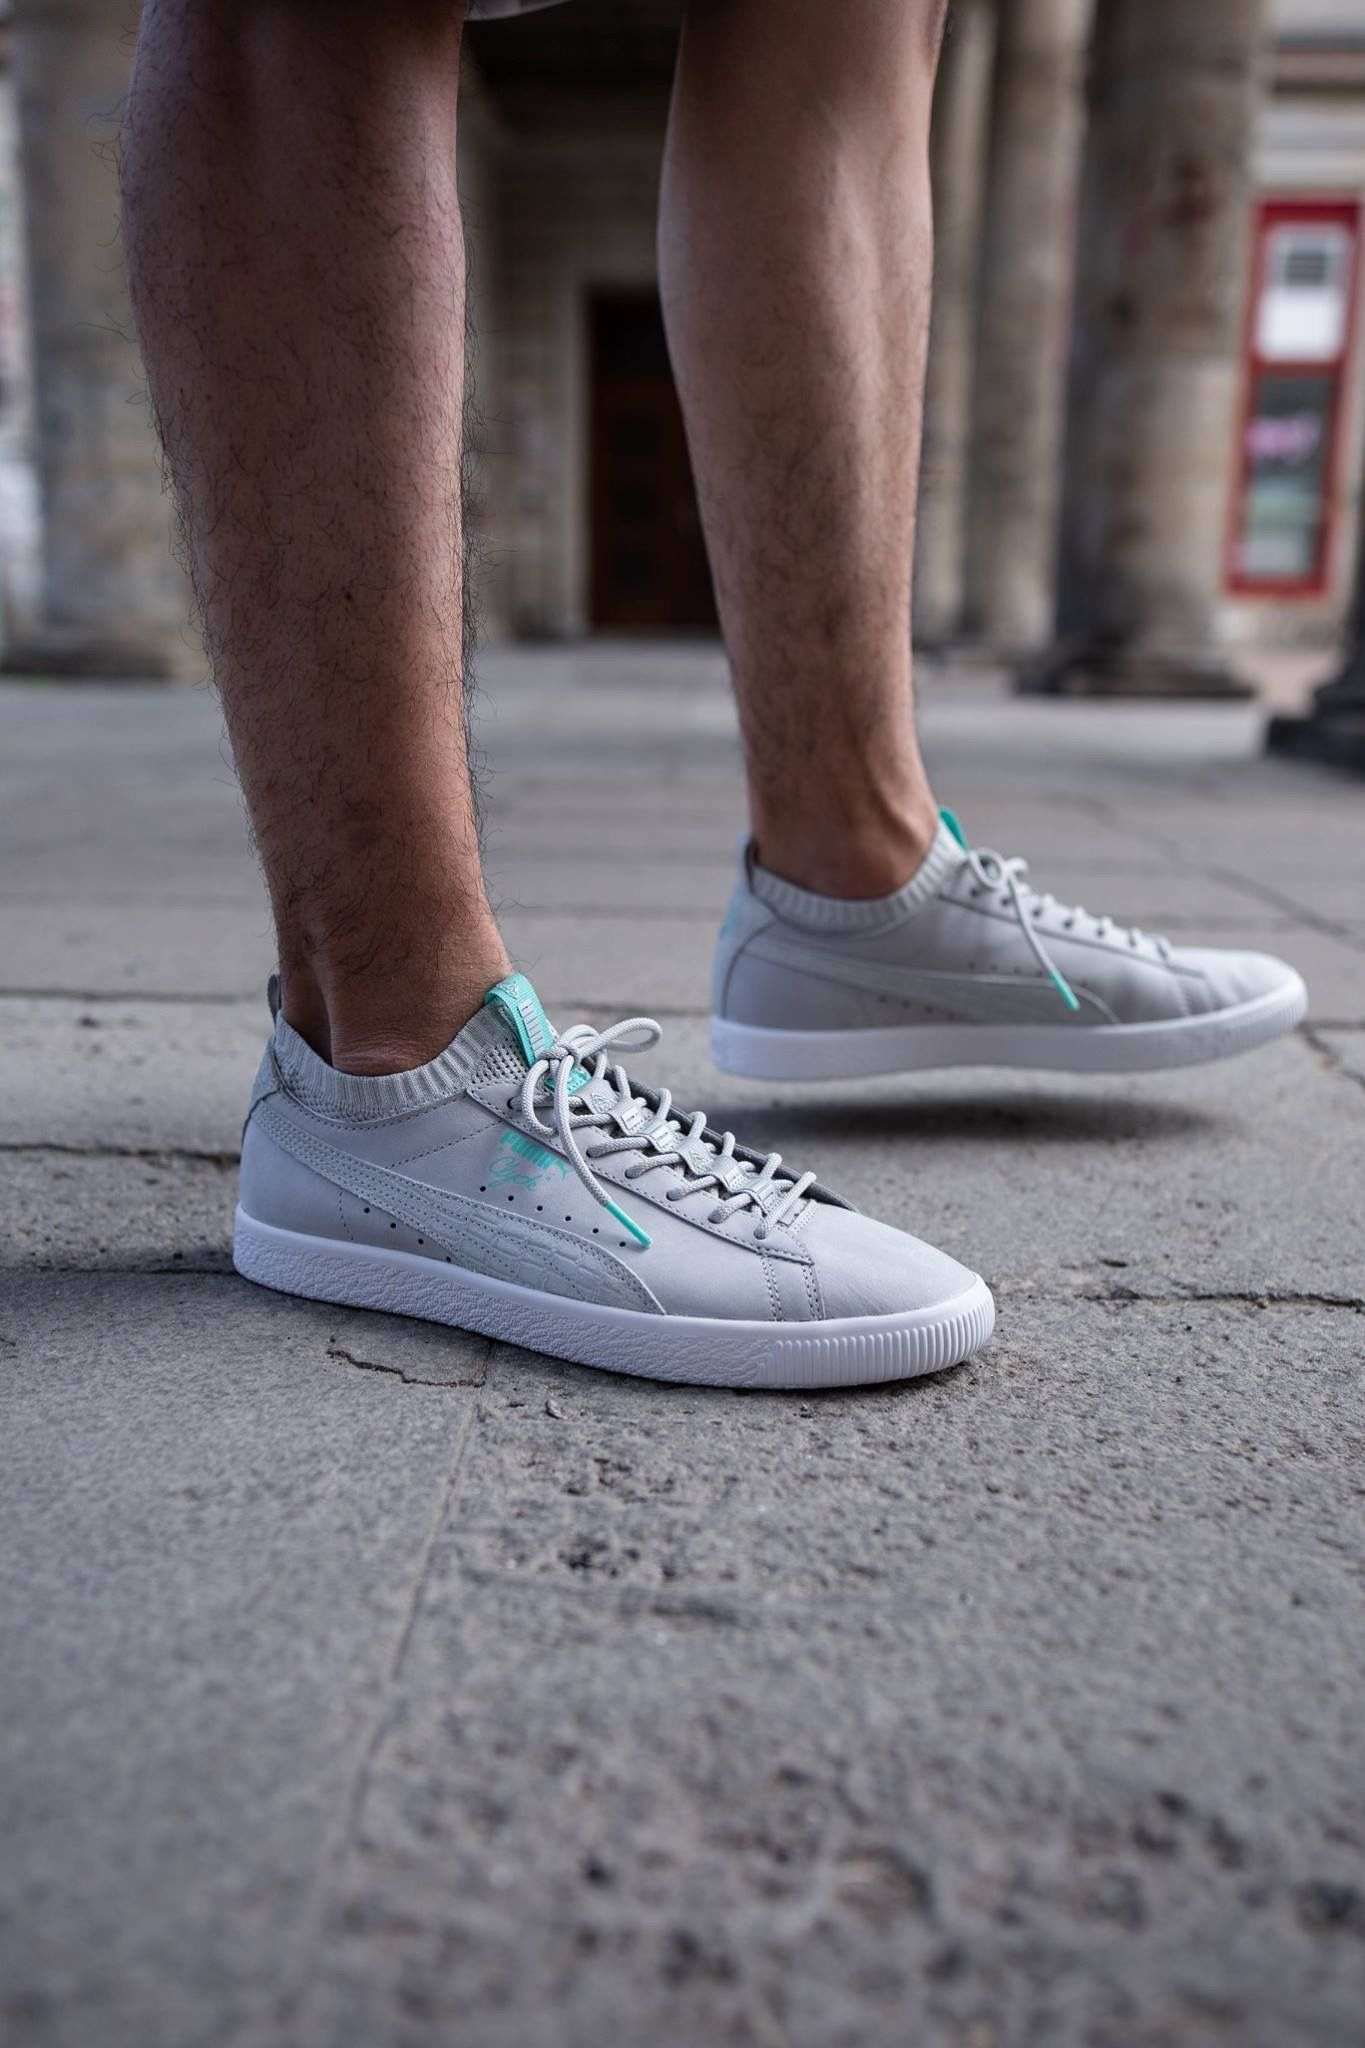 388ebcae519b1d Diamond Supply Co x Puma Clyde Sock